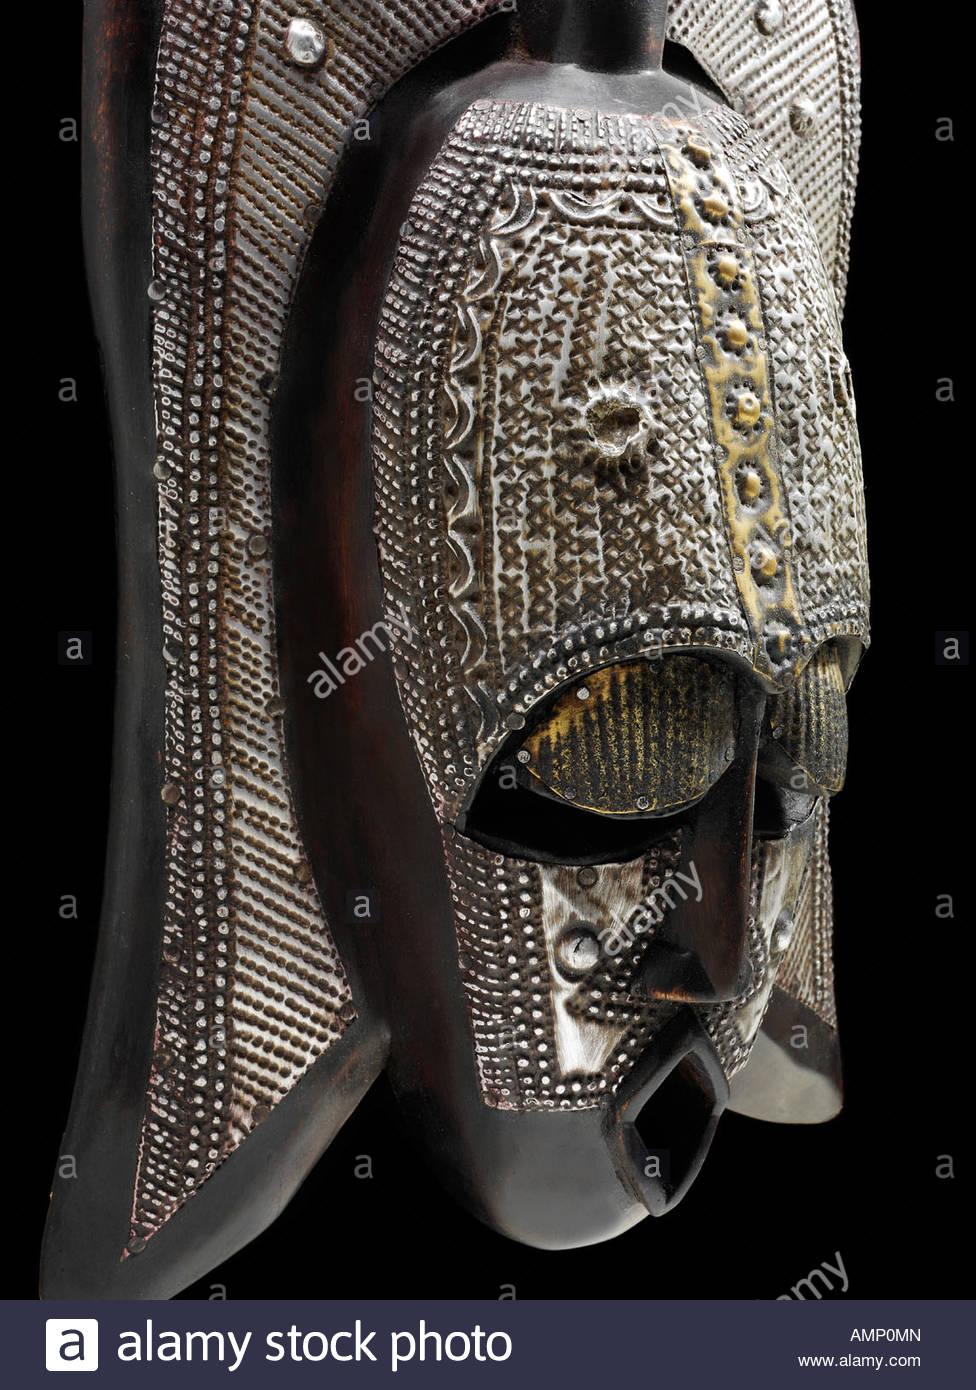 Ethnic traditional African mask used for tribal dances and events. Carved from wood. Art and craft. - Stock Image